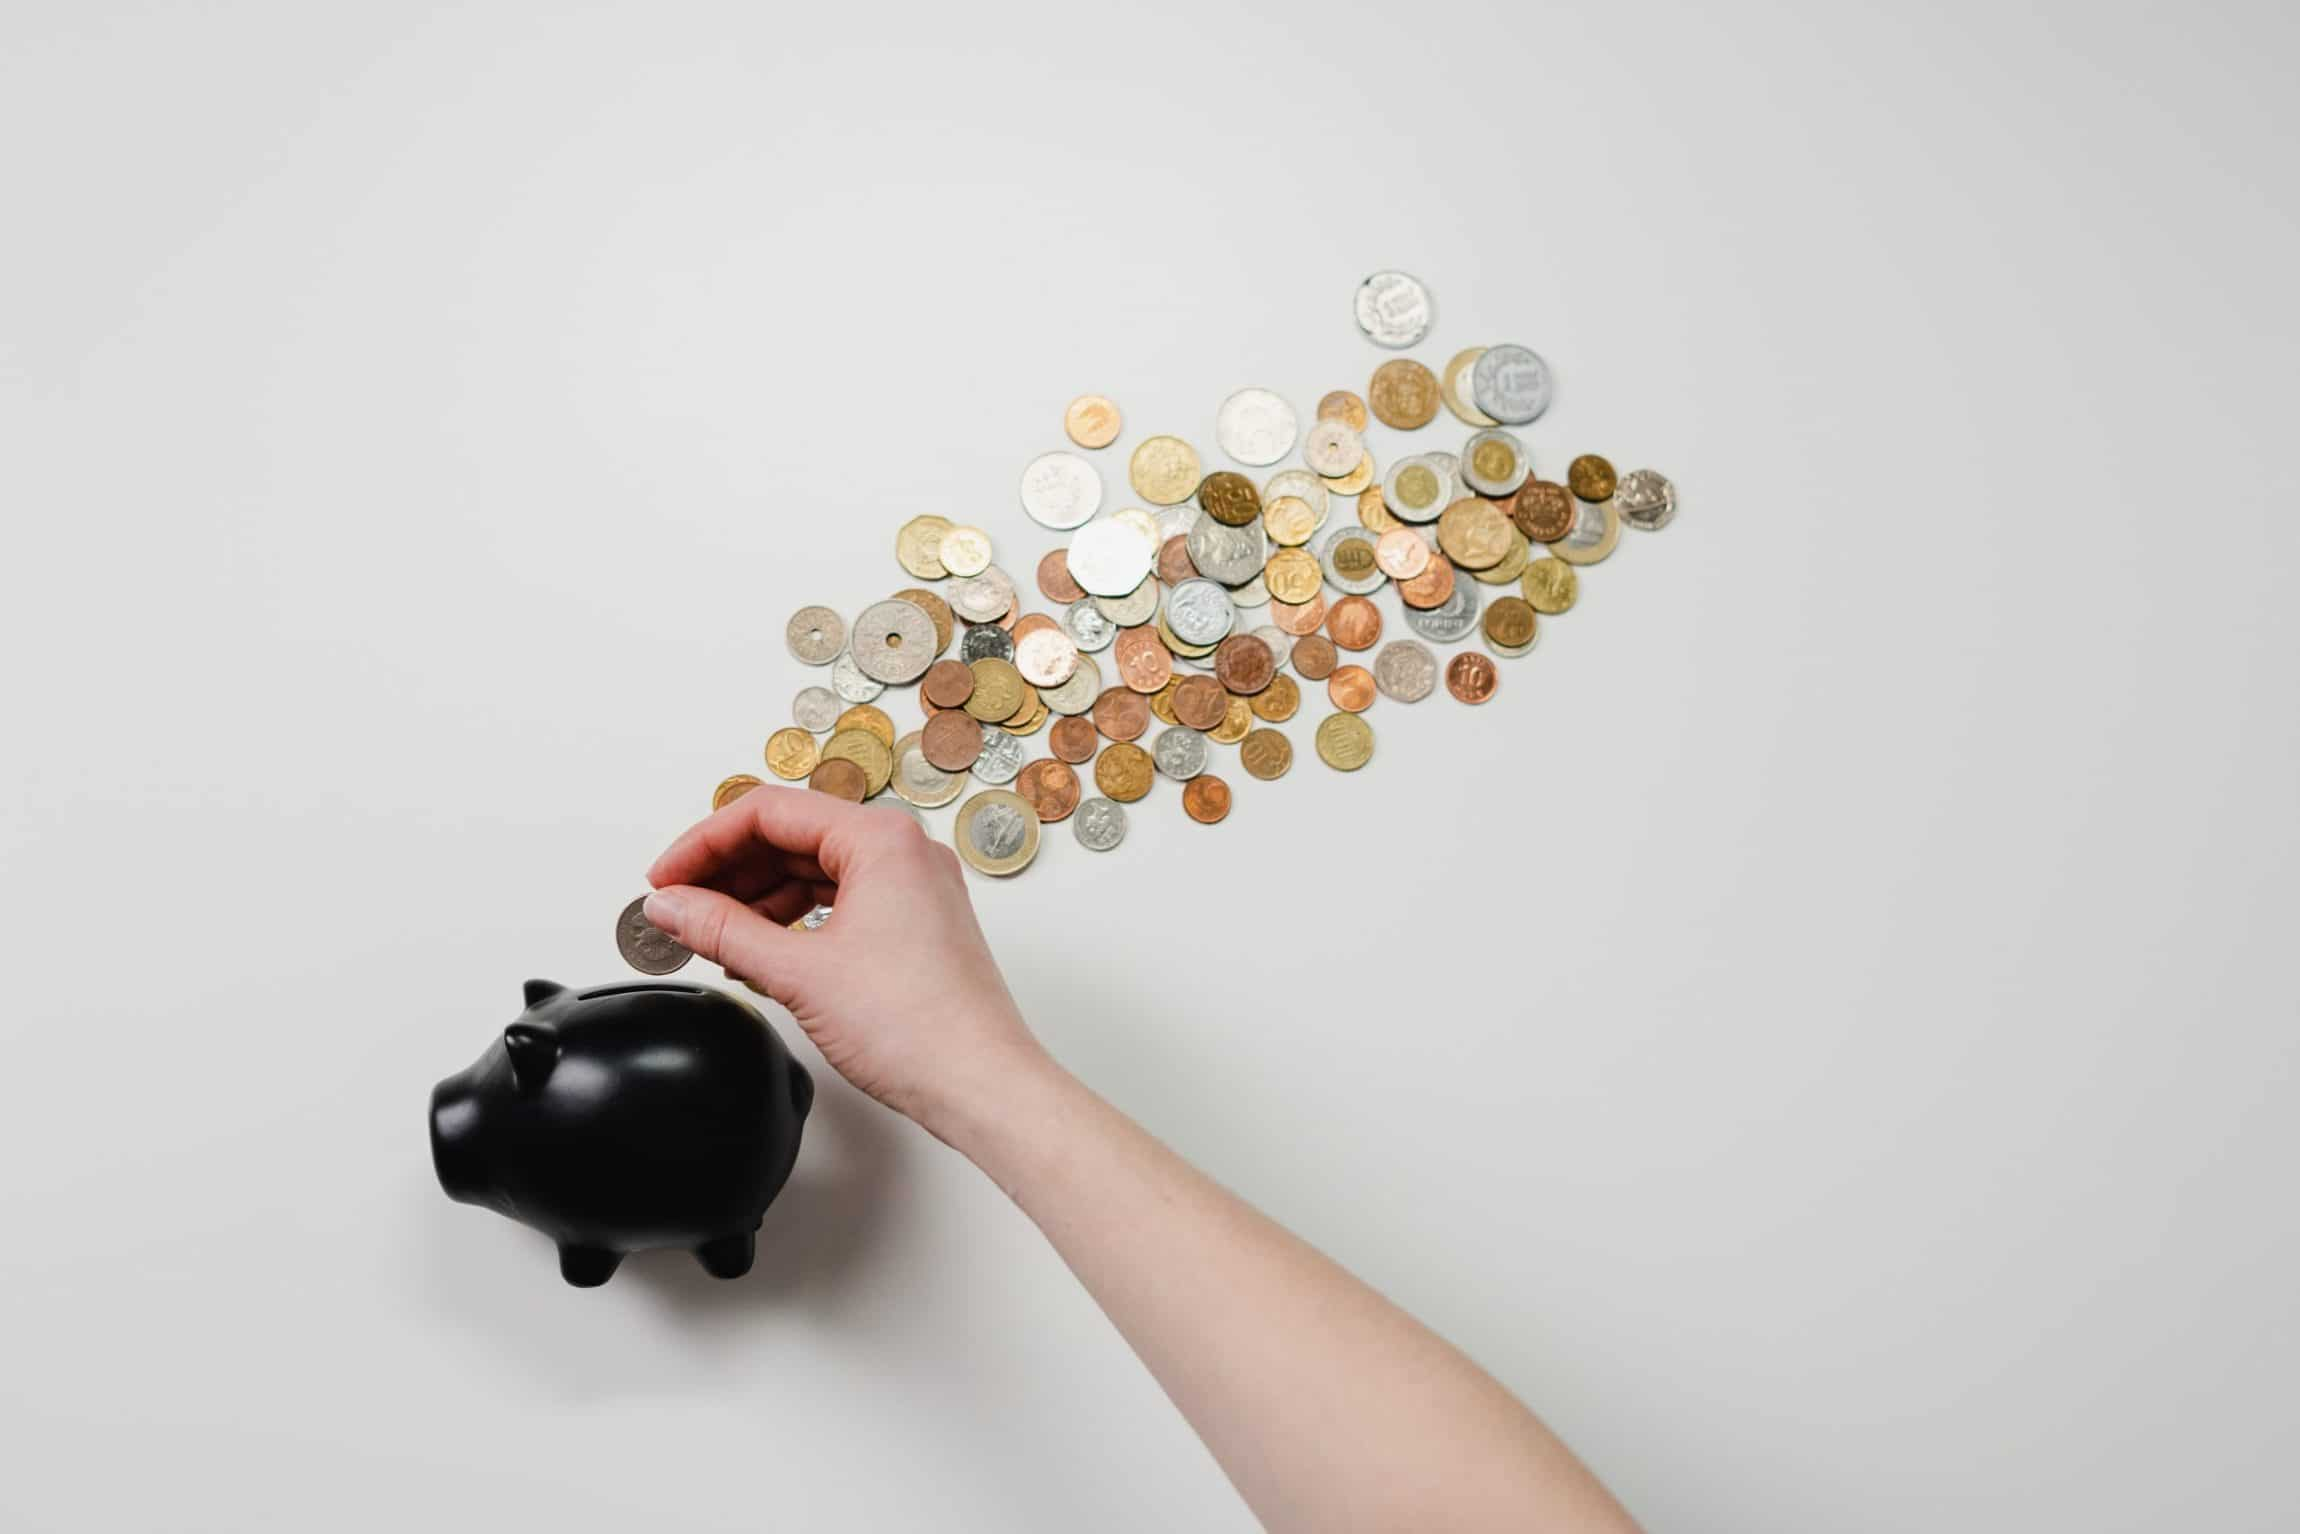 How Do Our Finances Connect to Our Mental Health?